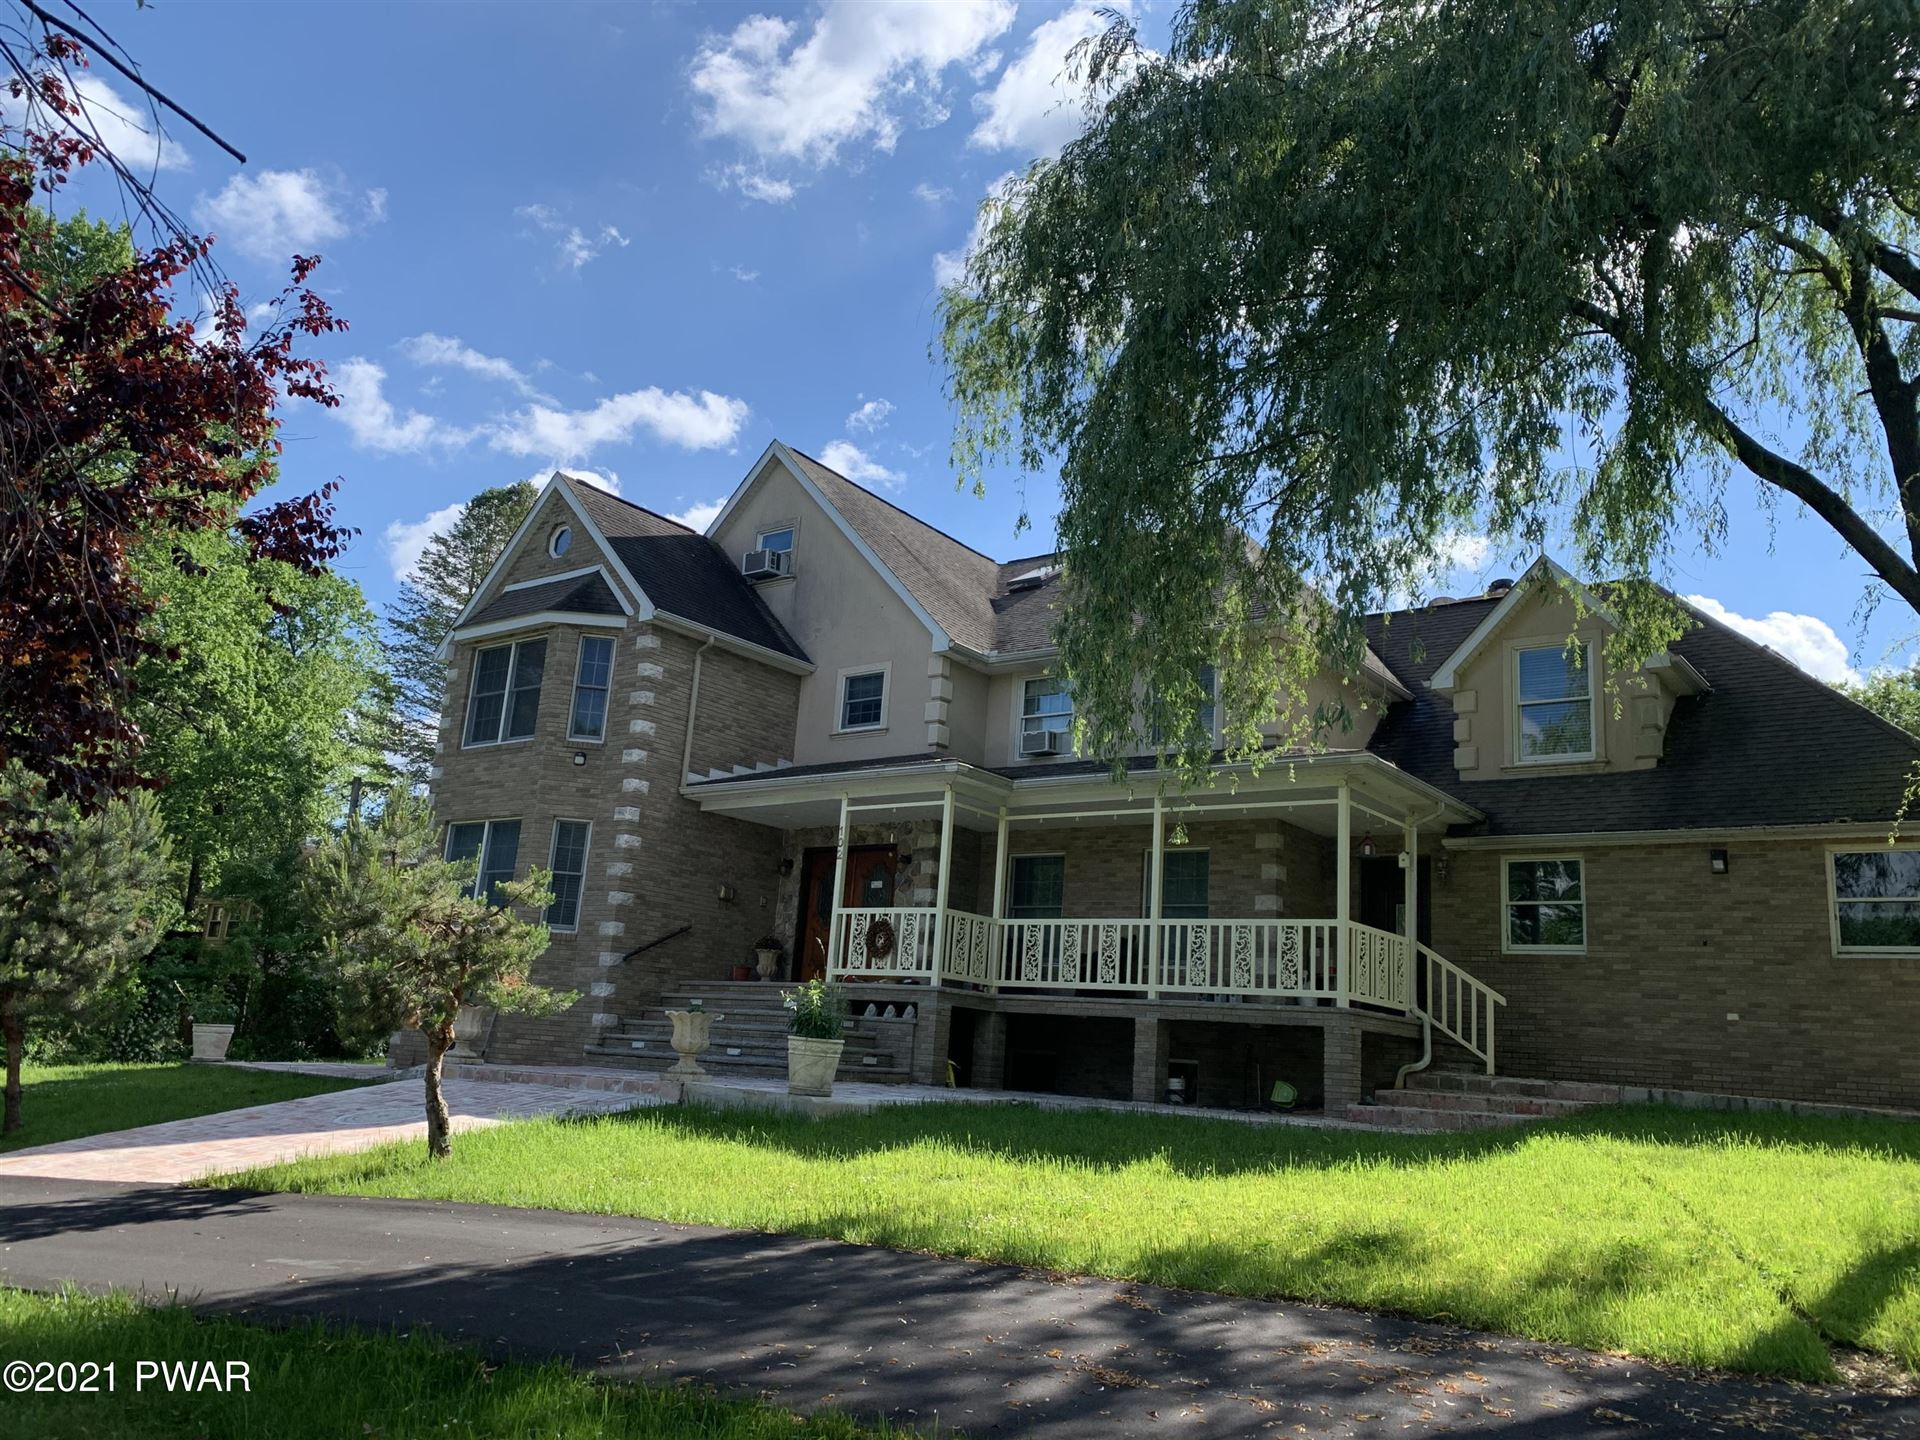 Photo of 102 Basswood Dr, Lords Valley, PA 18428 (MLS # 21-1957)